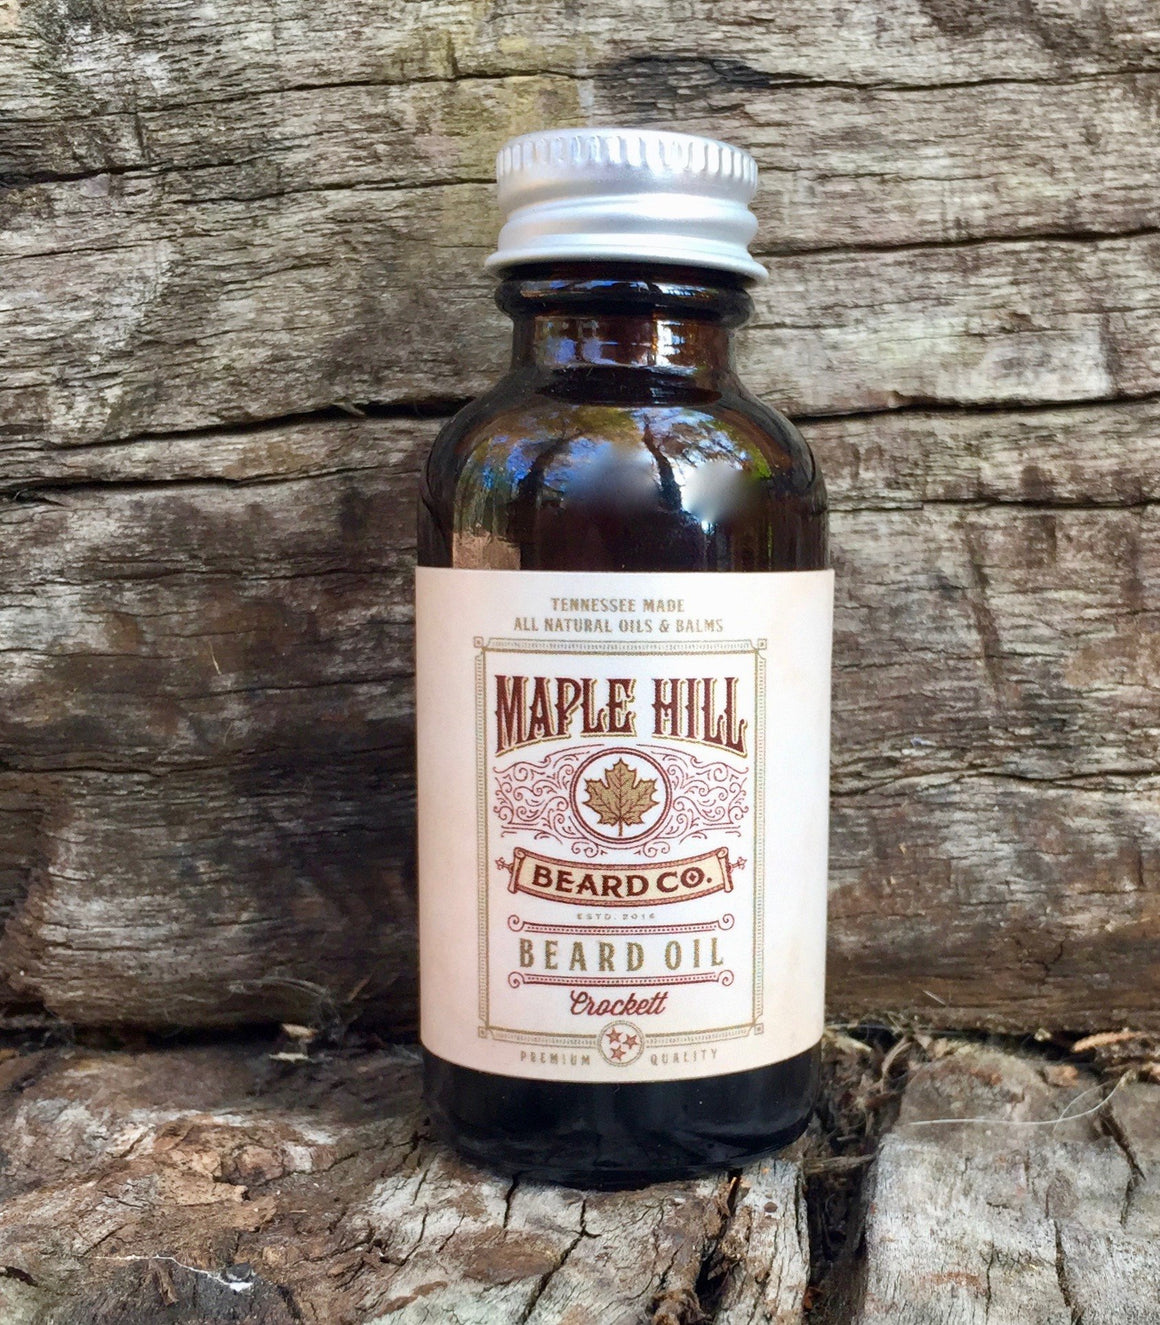 Beard Oil - Crockett Beard Oil - 1 Fl Oz / 30 Ml